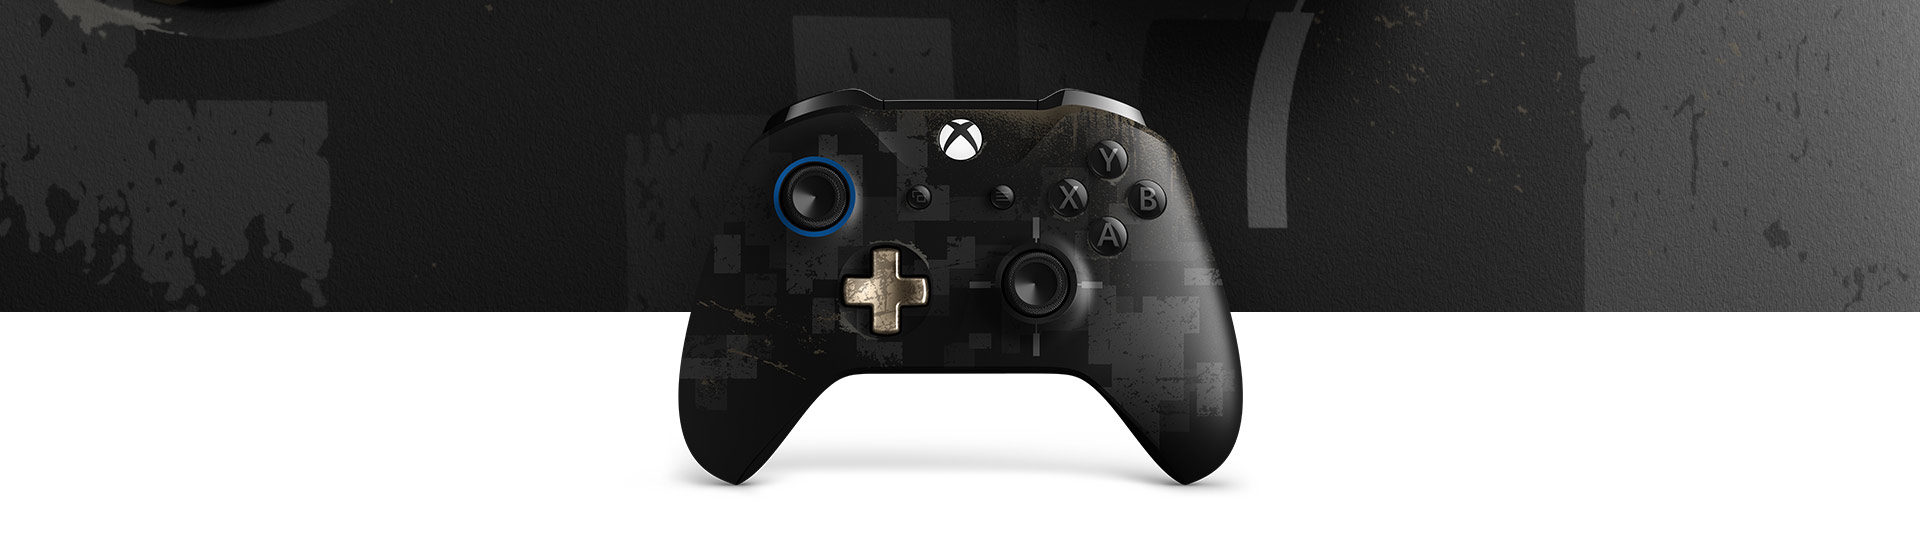 Xbox One Elite Custom Controller Video Game Accessories Video Games